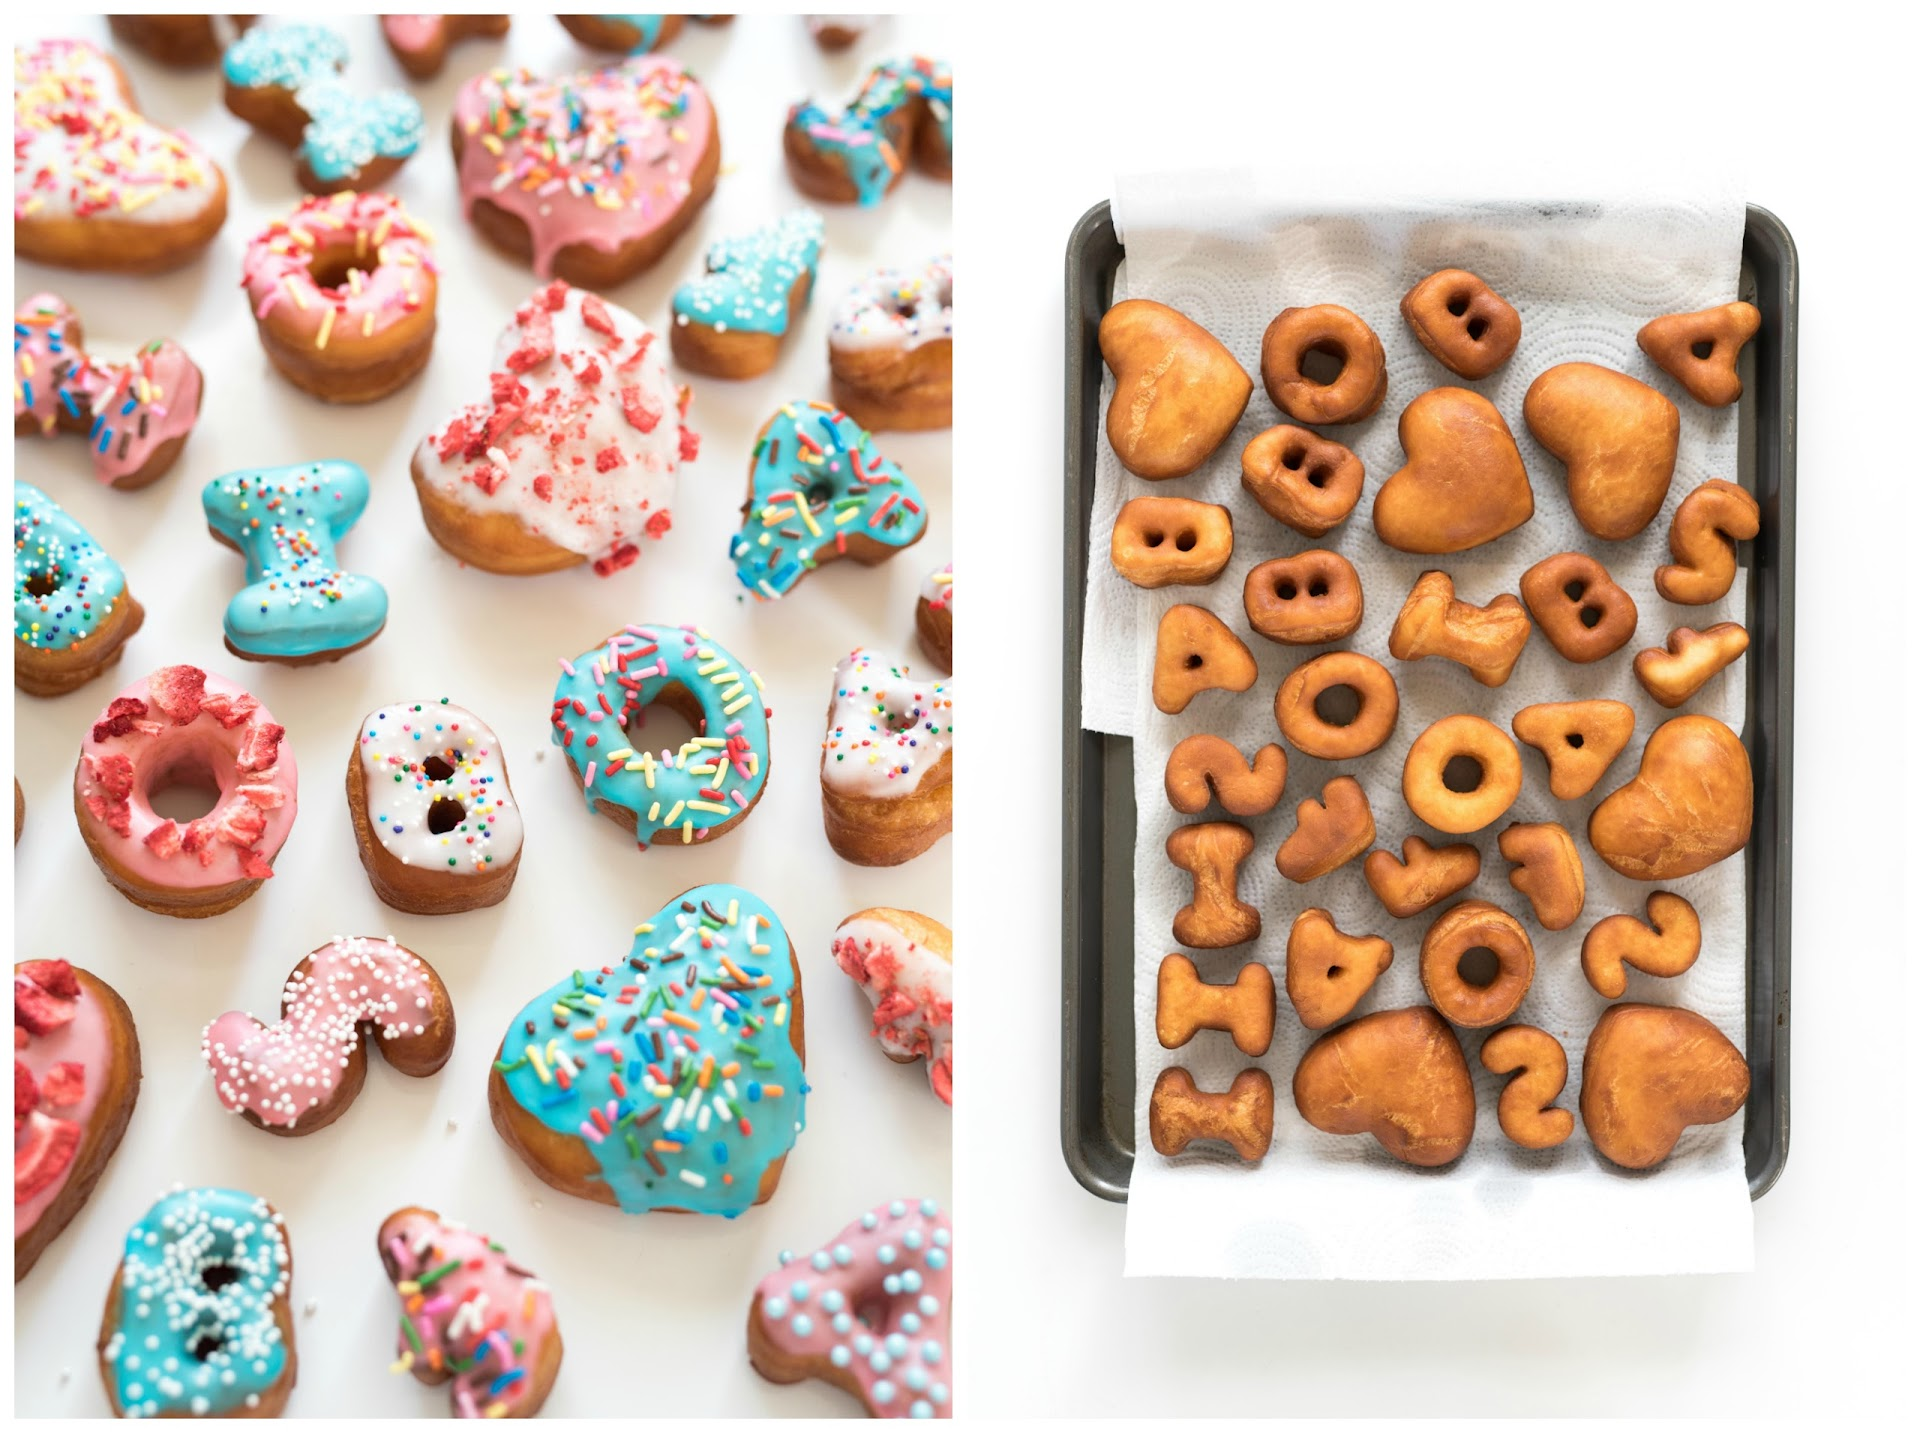 letter doughnuts, how to make a message with doughnuts, unique birthday gift idea, valentine's day, promposal, mother's day, father's day, food gift ideas, gifts for people who love doughnuts, donuts